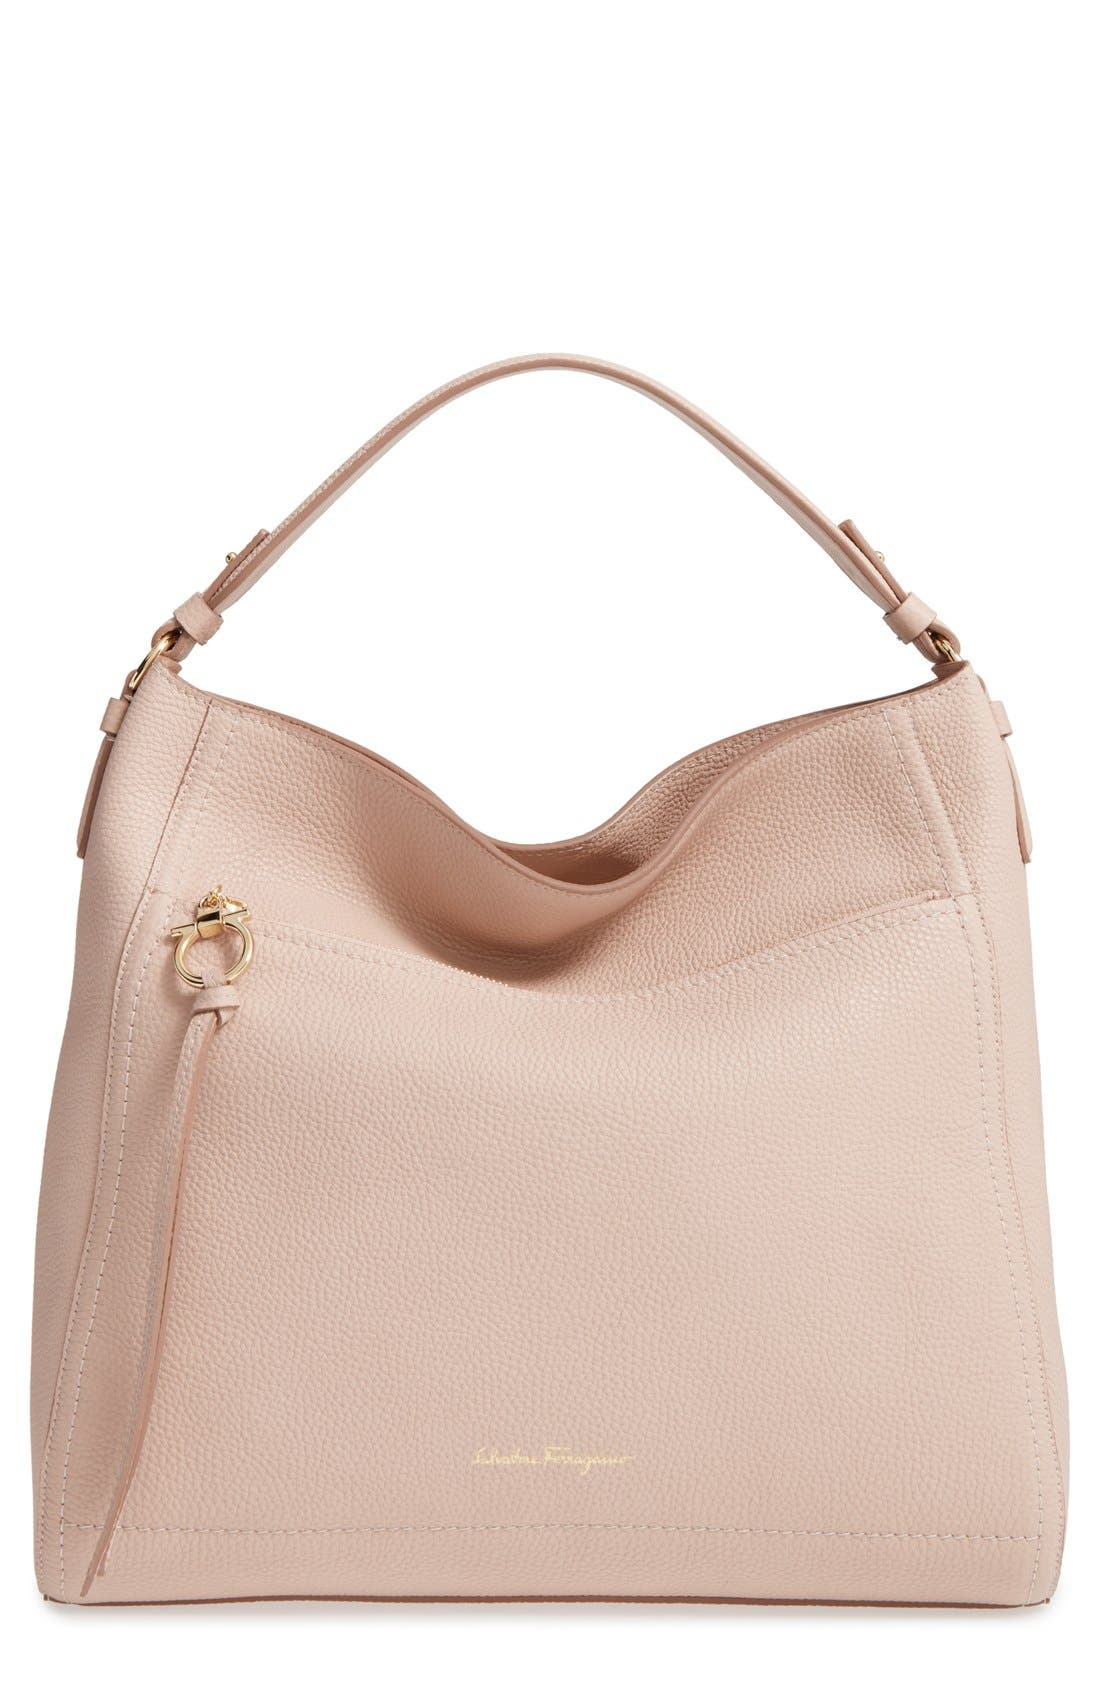 Calfskin Leather Hobo,                             Main thumbnail 1, color,                             250